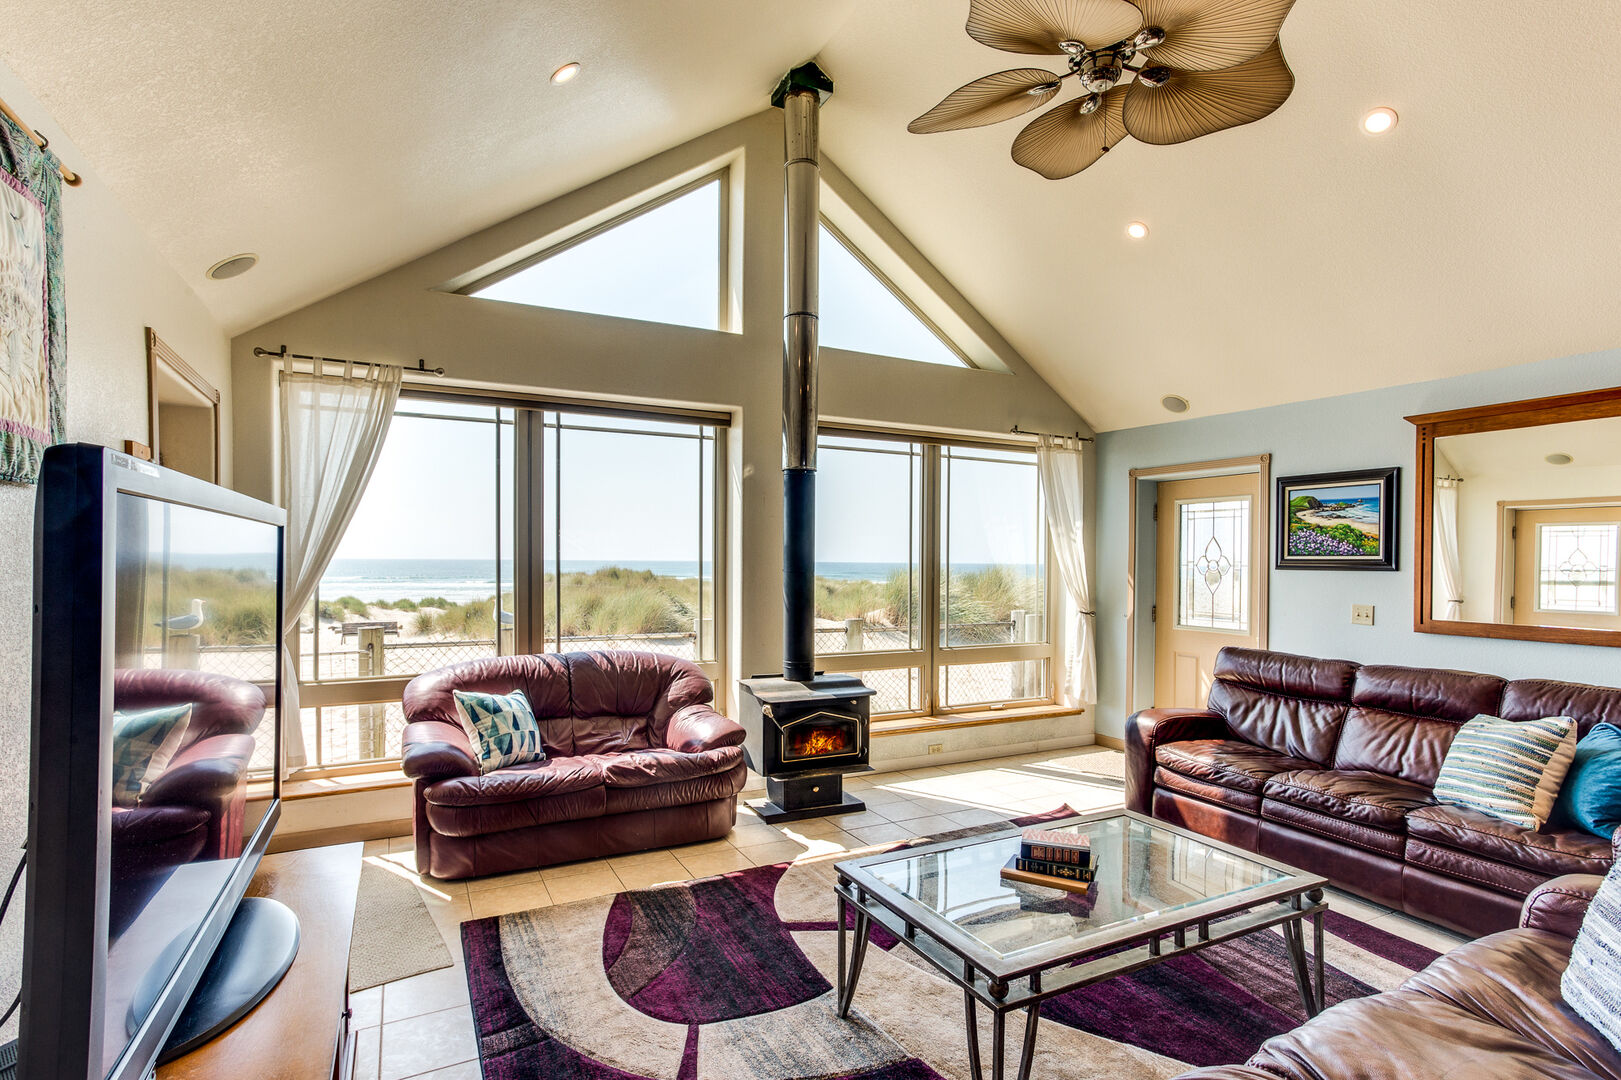 Enjoy watching the waves roll in from the comfort of the great room.